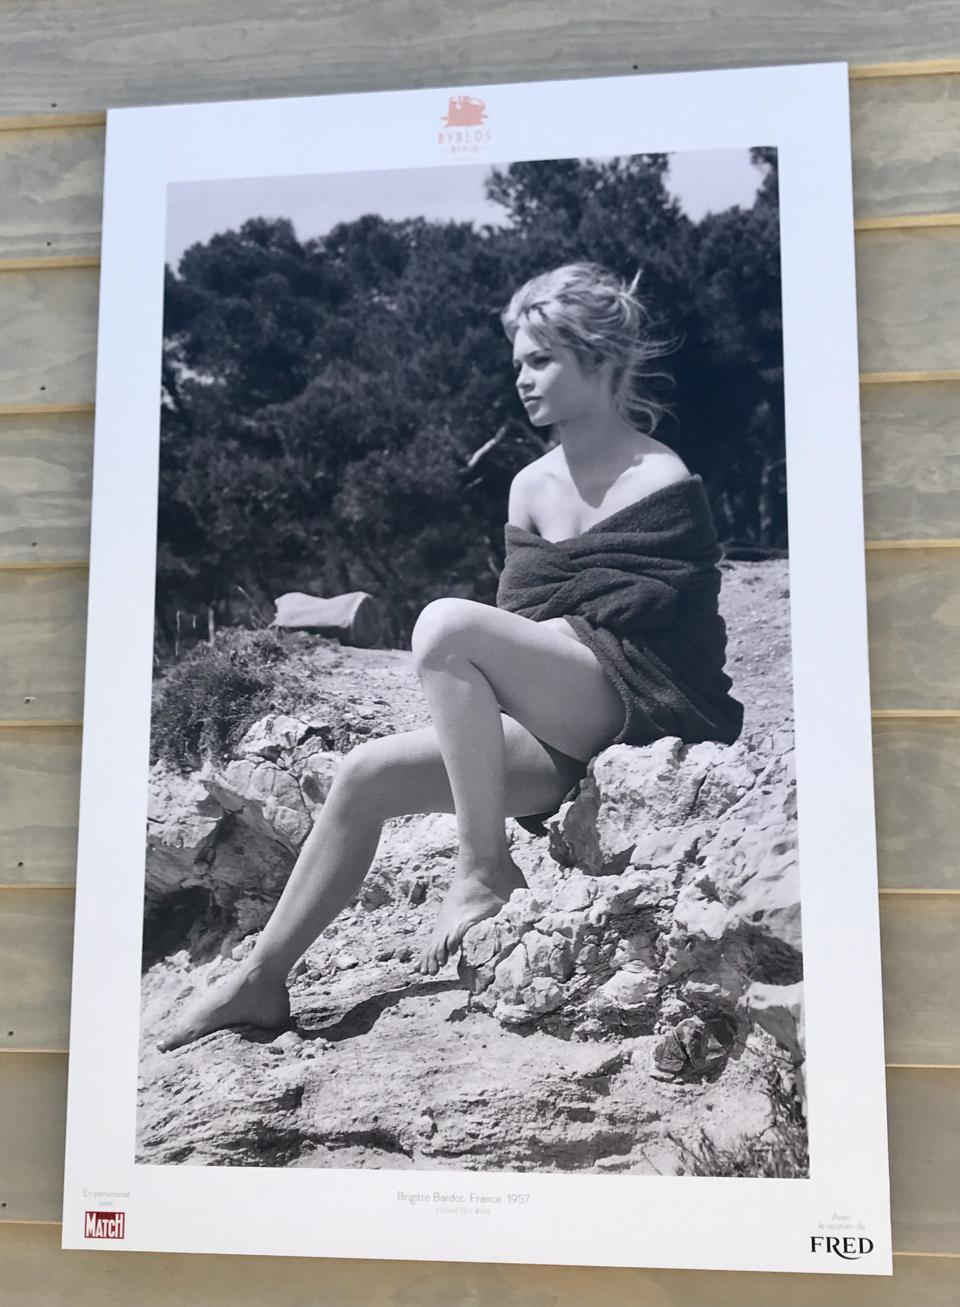 Brigitte Bardot from exhibition Stars on the Beach at Byblos Beach.